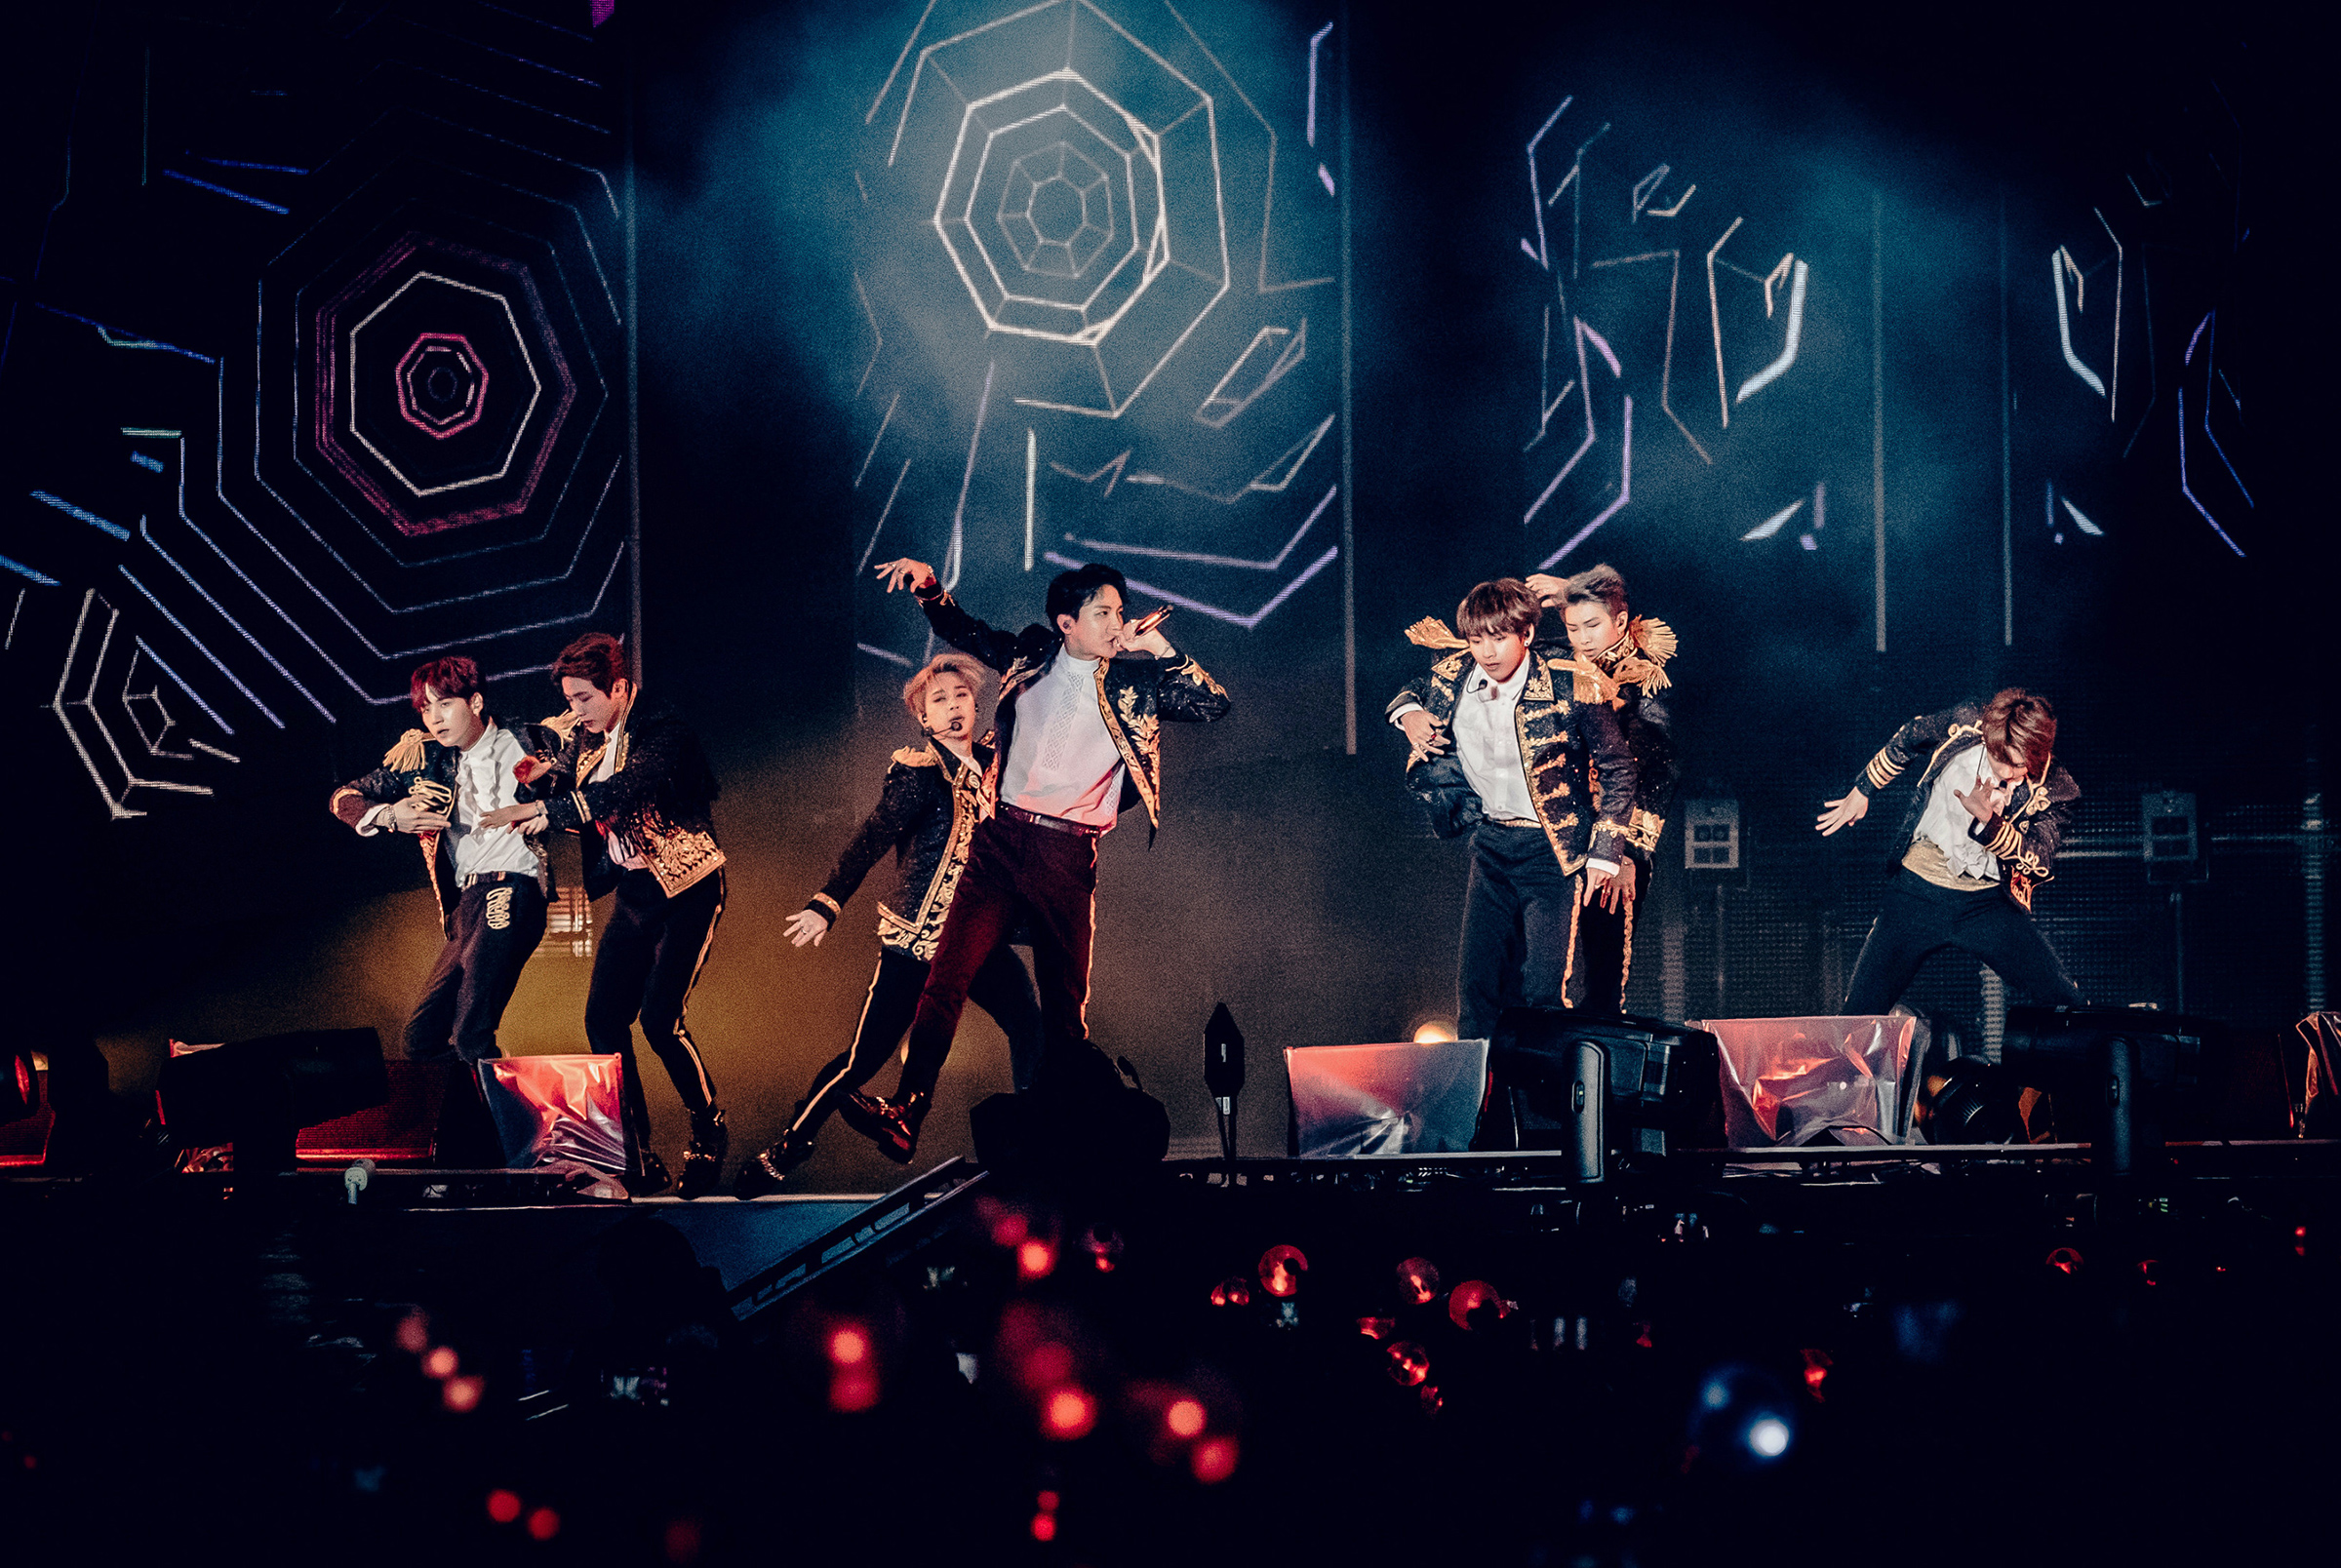 BTS performs at Citi Field in New York, Oct. 6, 2018